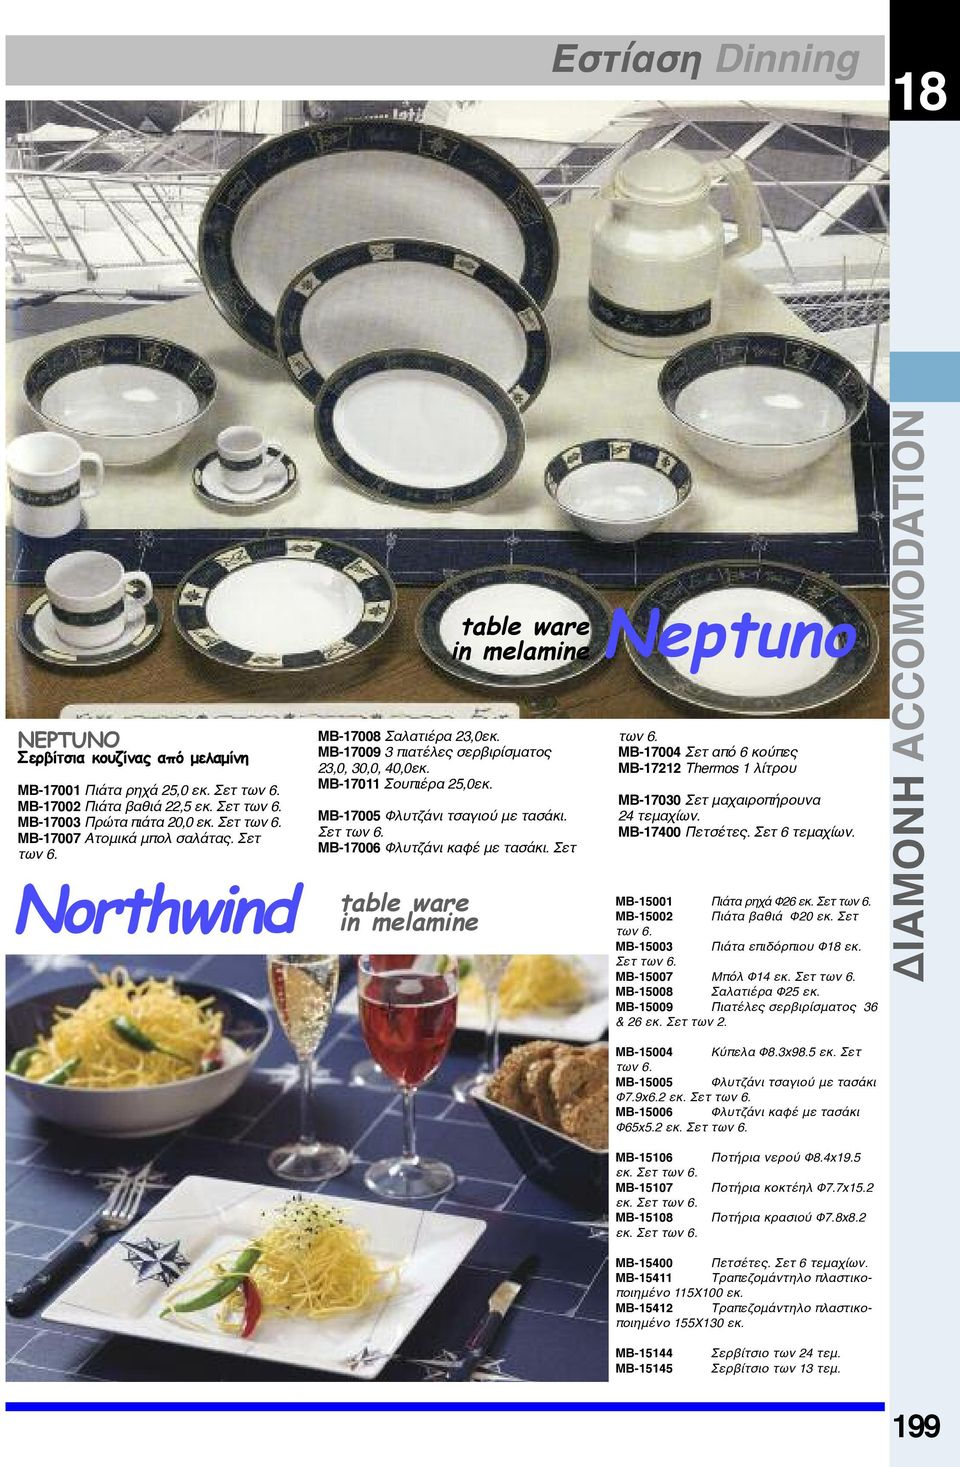 MB-17006 Φλυτζάνι καφέ με τασάκι. Σετ table ware in melamine table ware in melamine Neptuno των 6. MB-17004 Σετ από 6 κούπες MB-17212 Thermos 1 λίτρου MB-17030 Σετ μαχαιροπήρουνα 24 τεμαχίων.